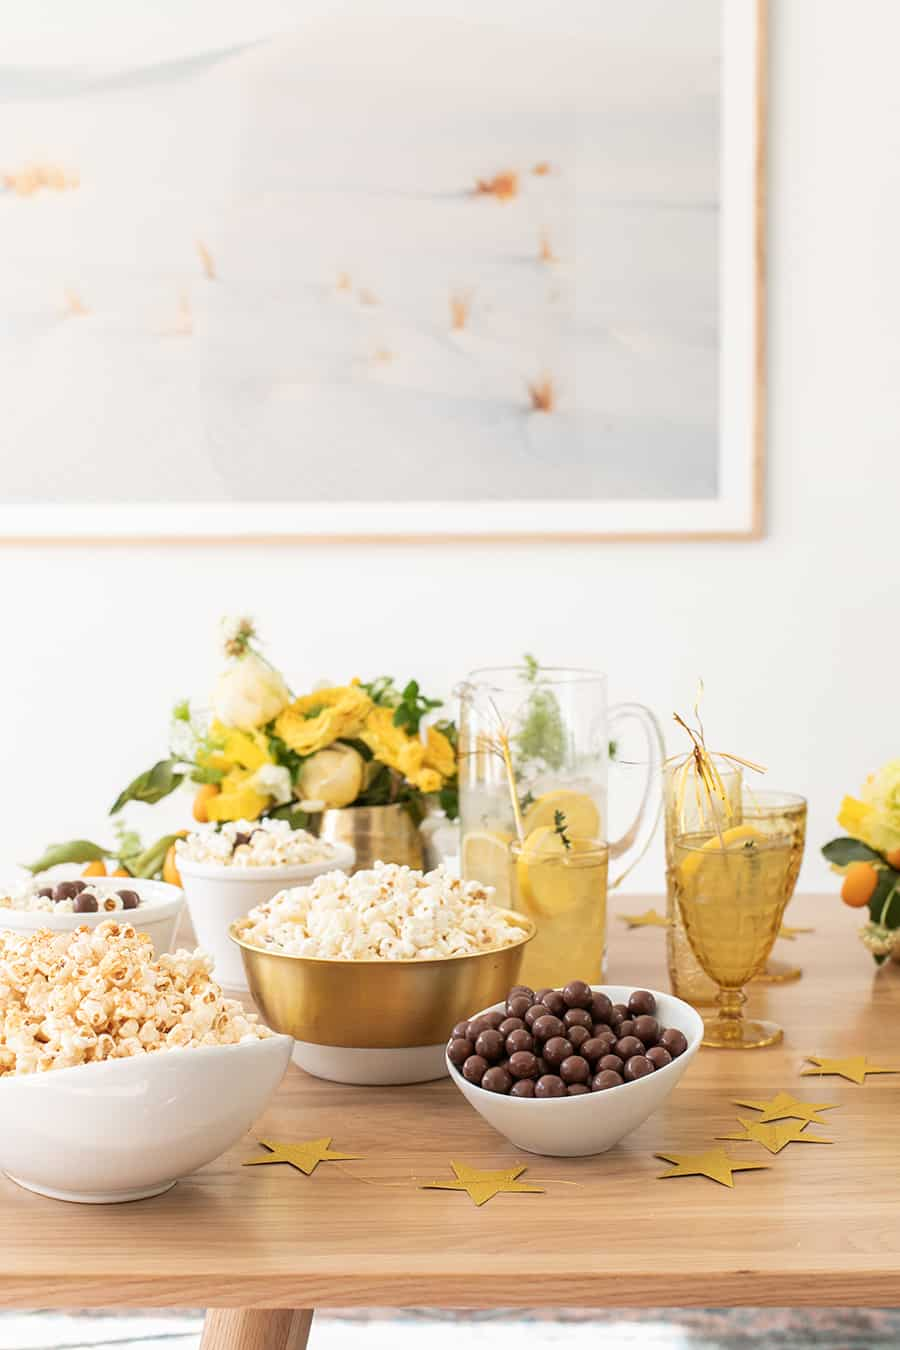 Popcorn and candy in bowls for an Oscar party